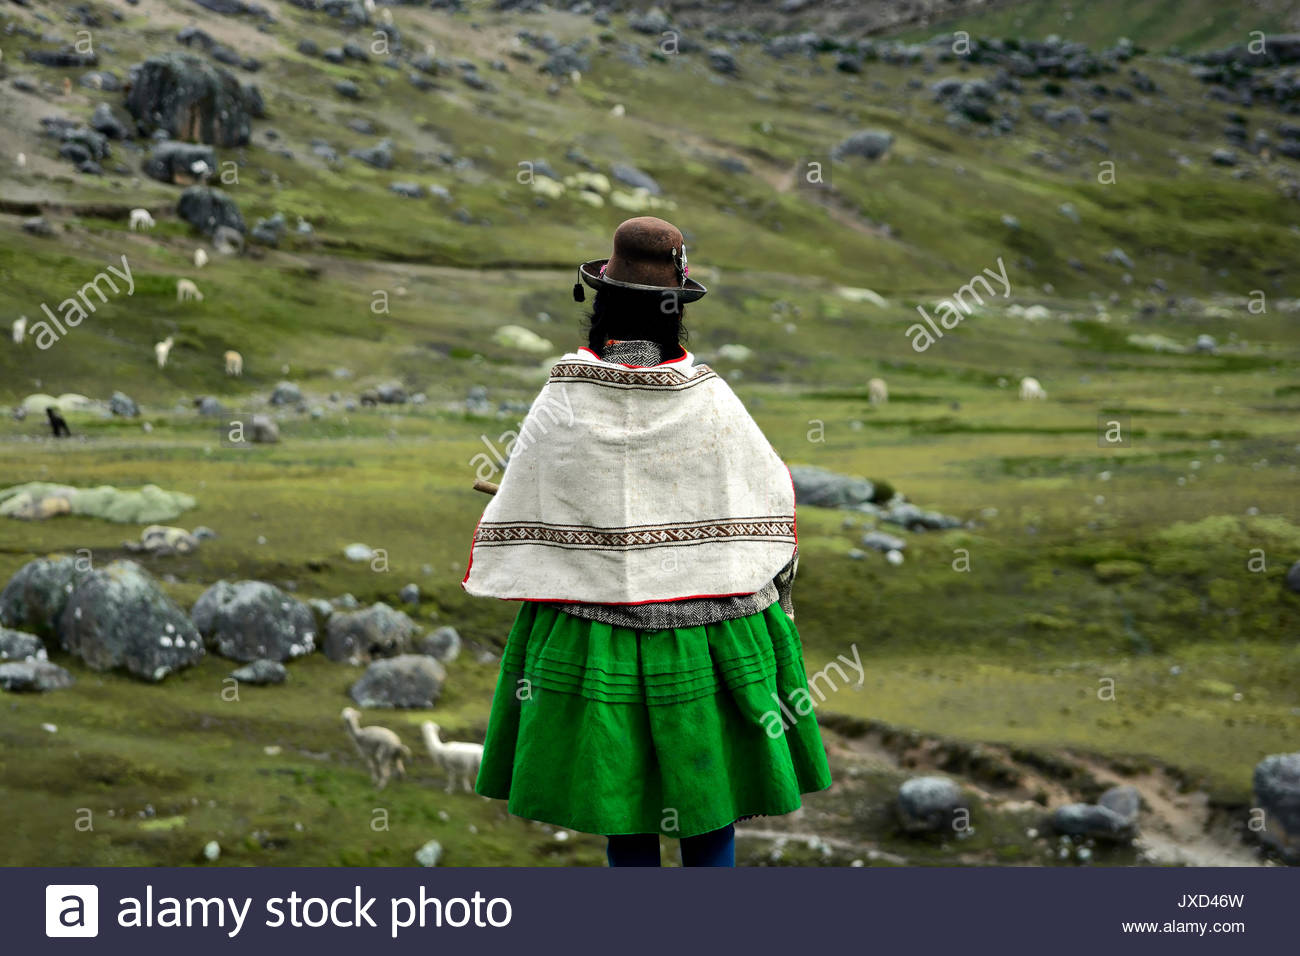 Quechua (kichwa) indigenous woman looking for her herd of alpacas at Peruvian highlands - Stock Image